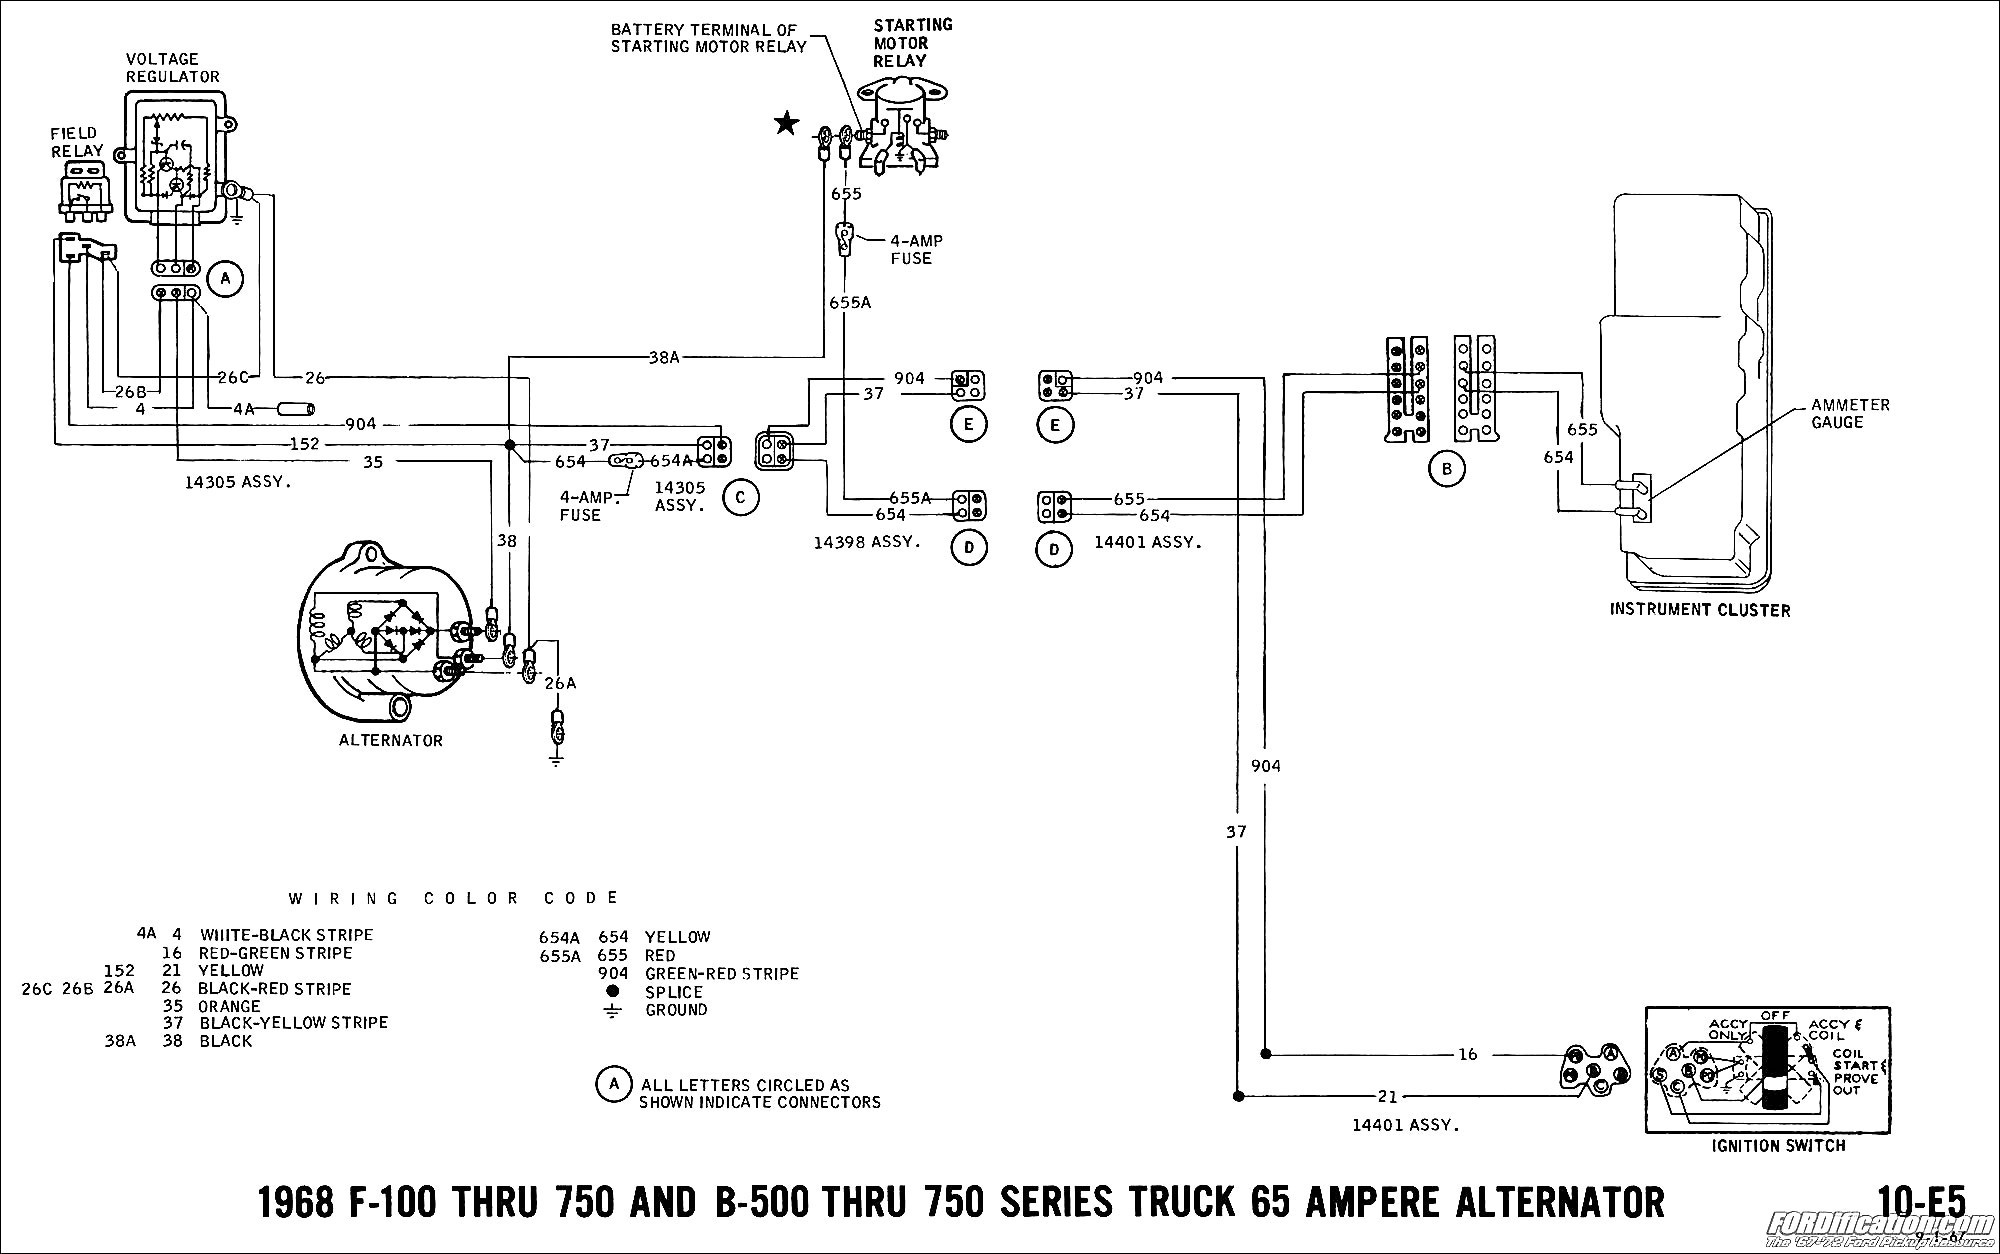 ford 3930 parts diagram schematic diagrams cummins 4bt alternator wiring  ford 1999 3930 parts diagram wiring